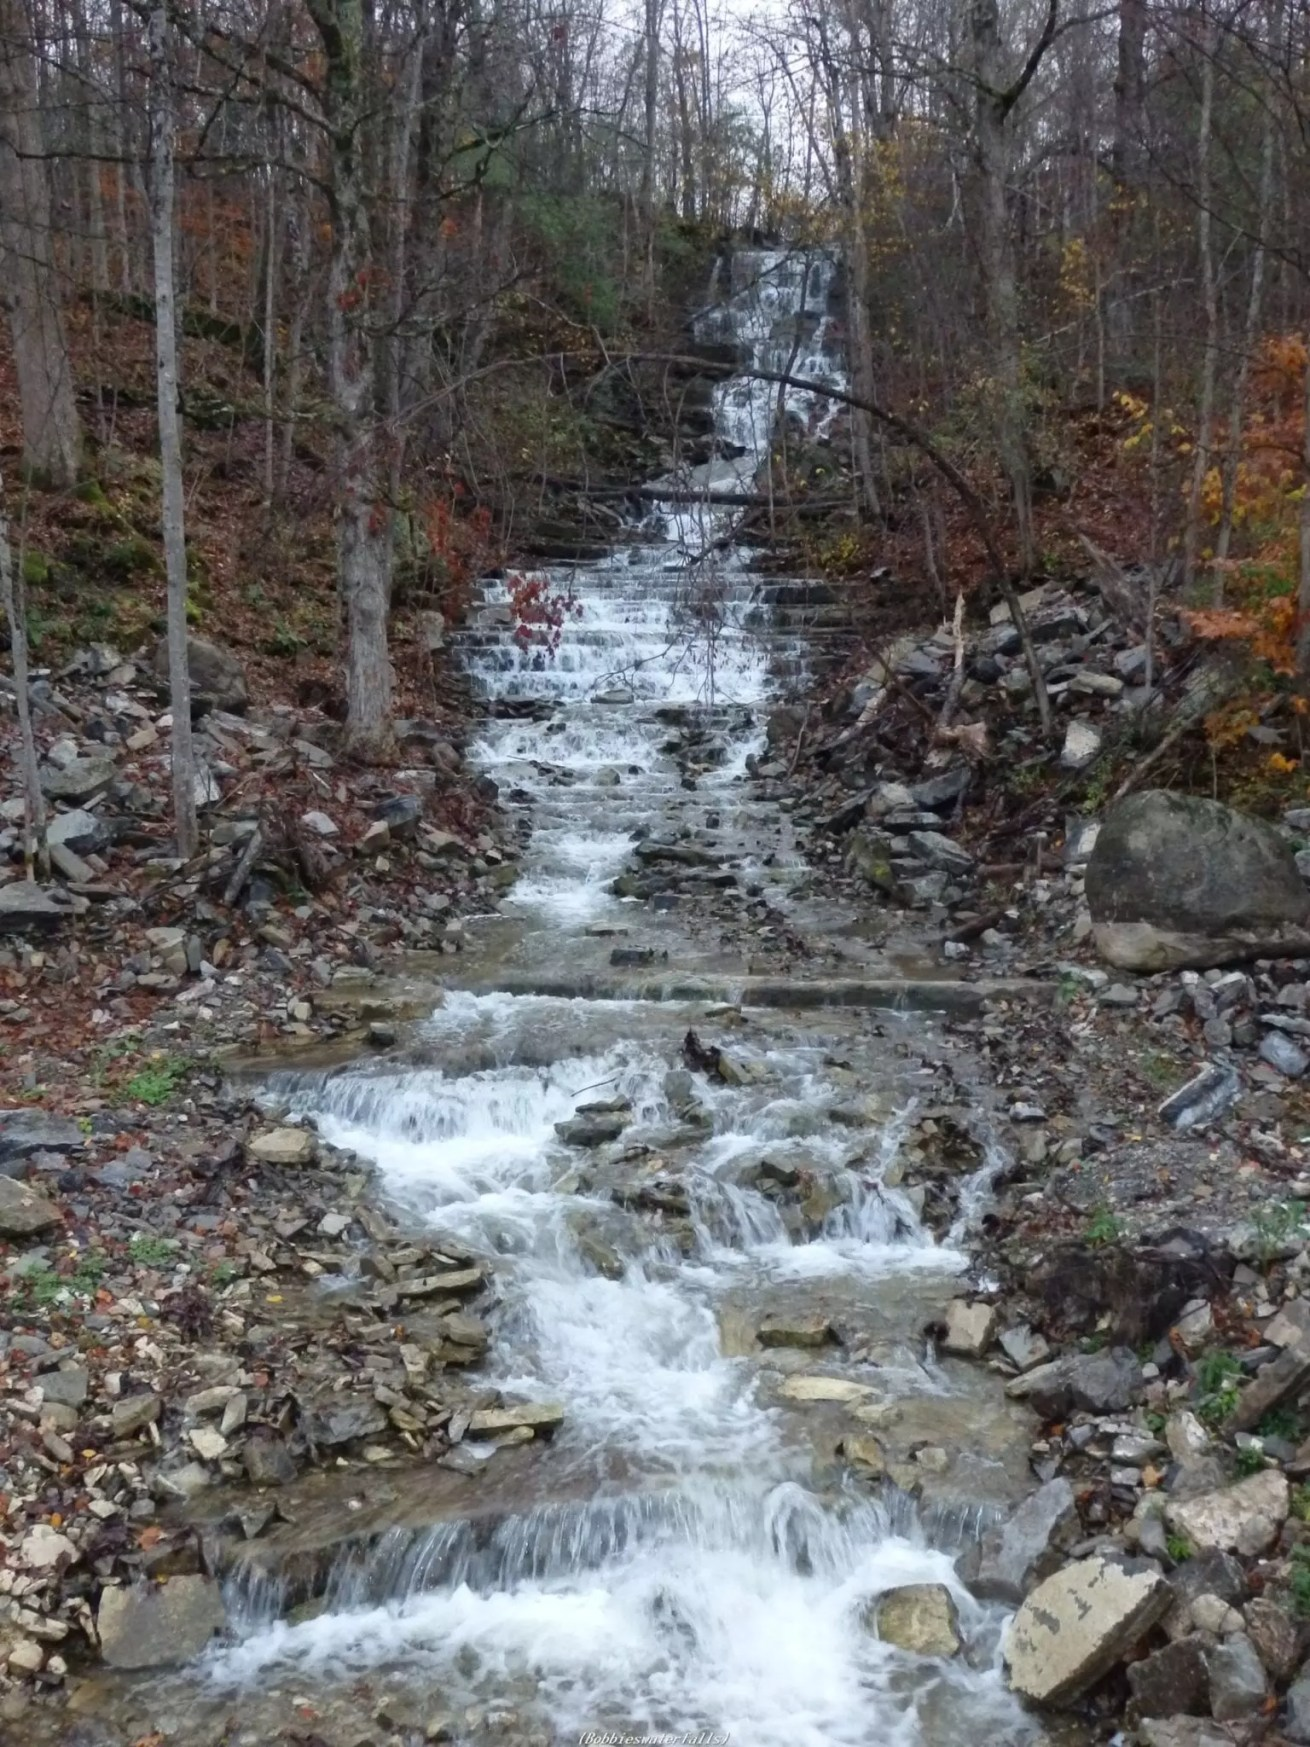 Unnamed Falls, Port Leyden, Lewis County, New York